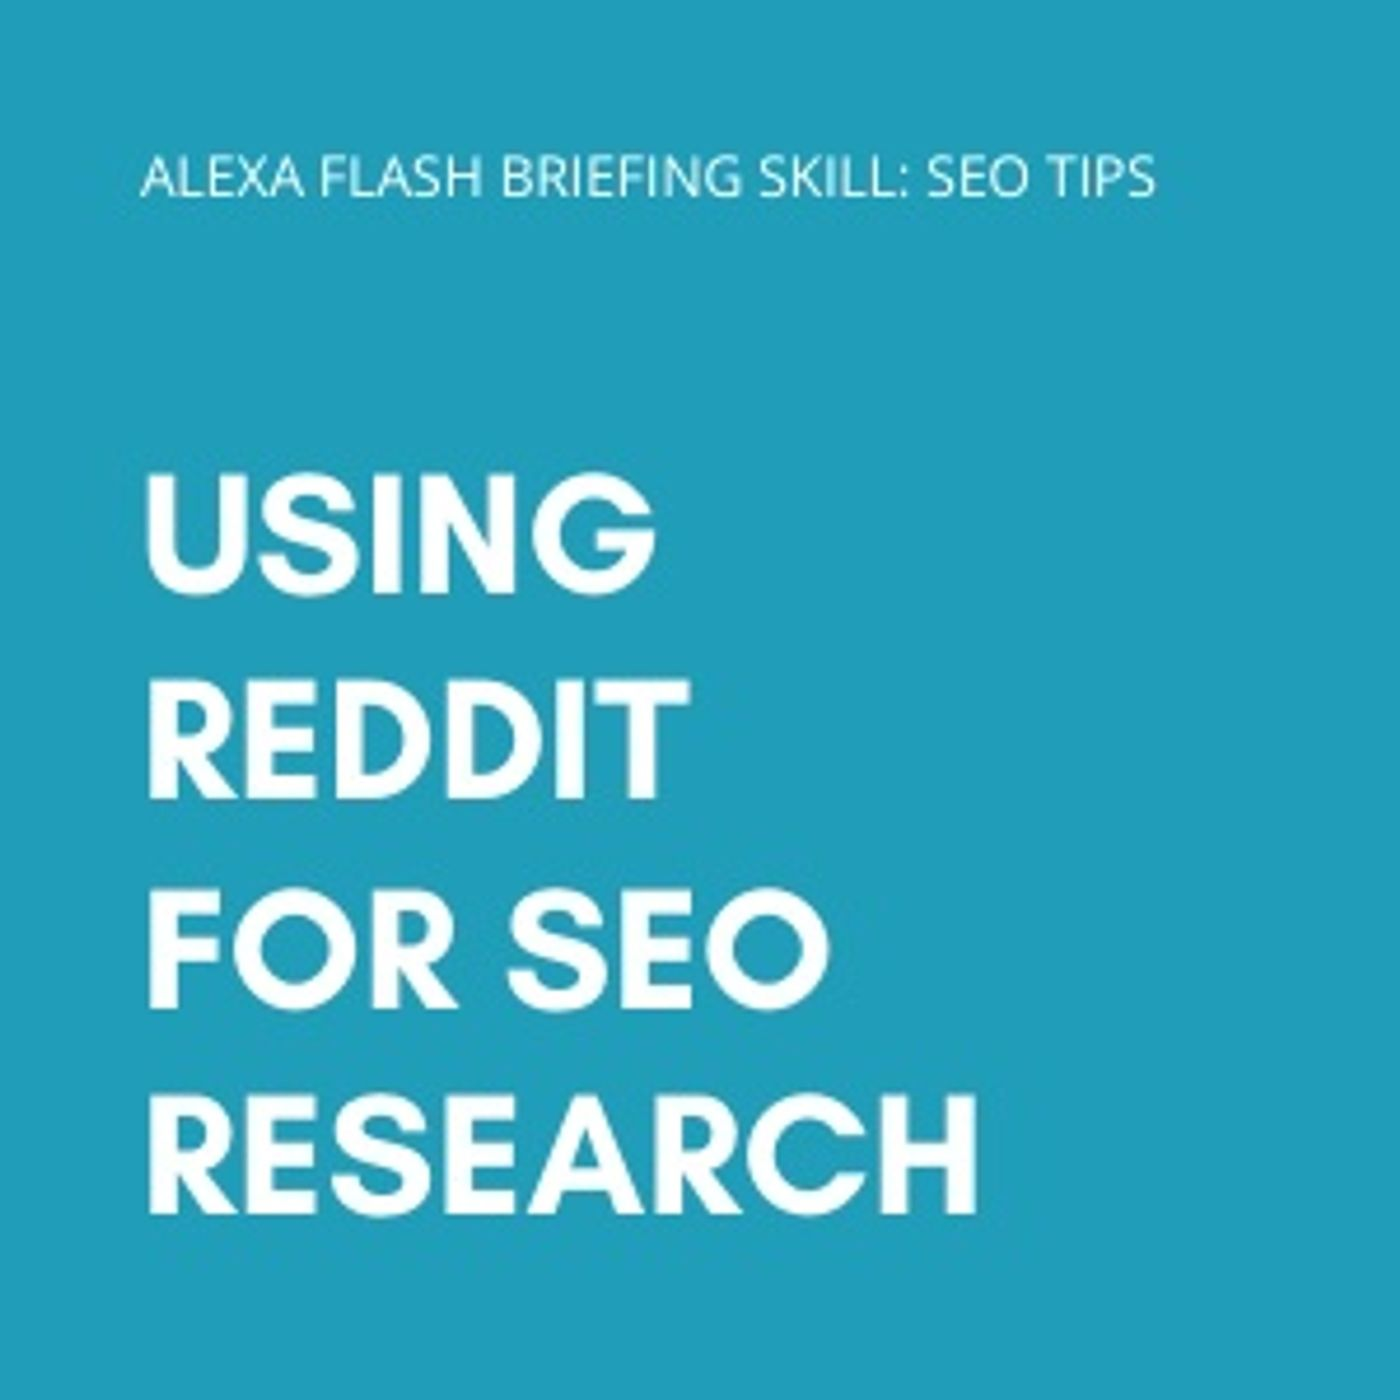 Using Reddit for SEO research